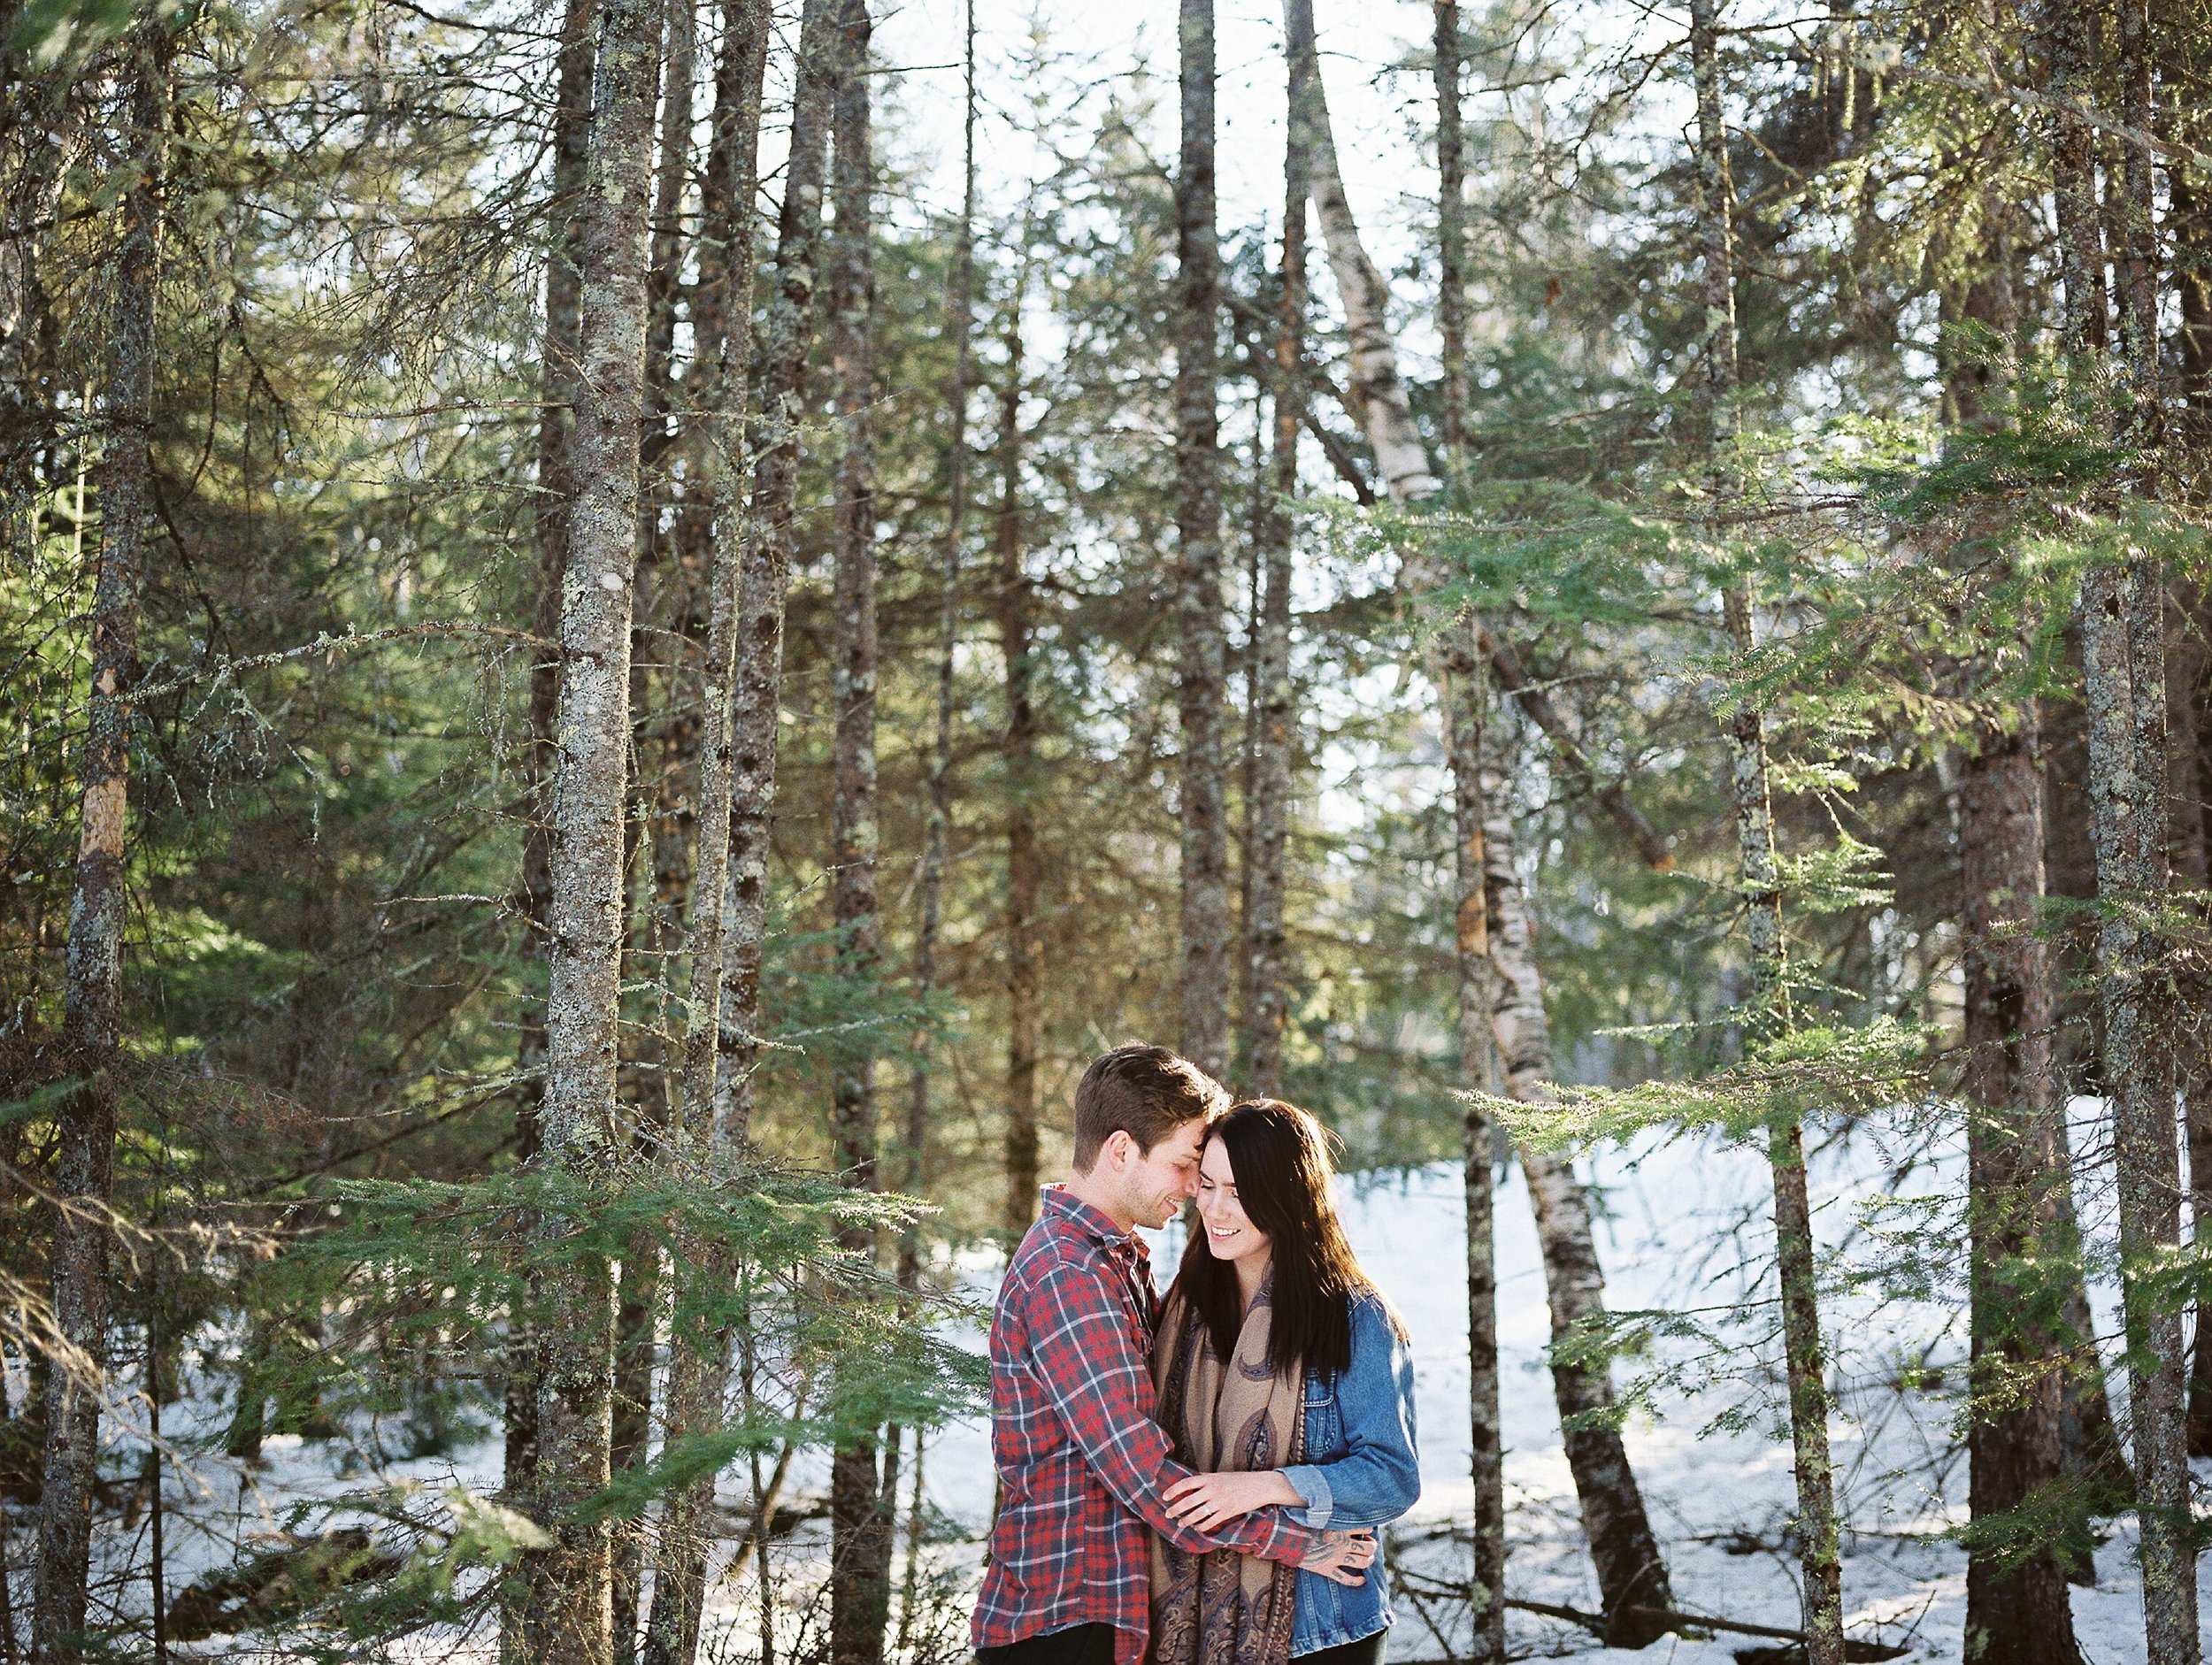 Forest couples photos | Romantic Engagement Session | photographed by Film photographer Keila Marie Photography